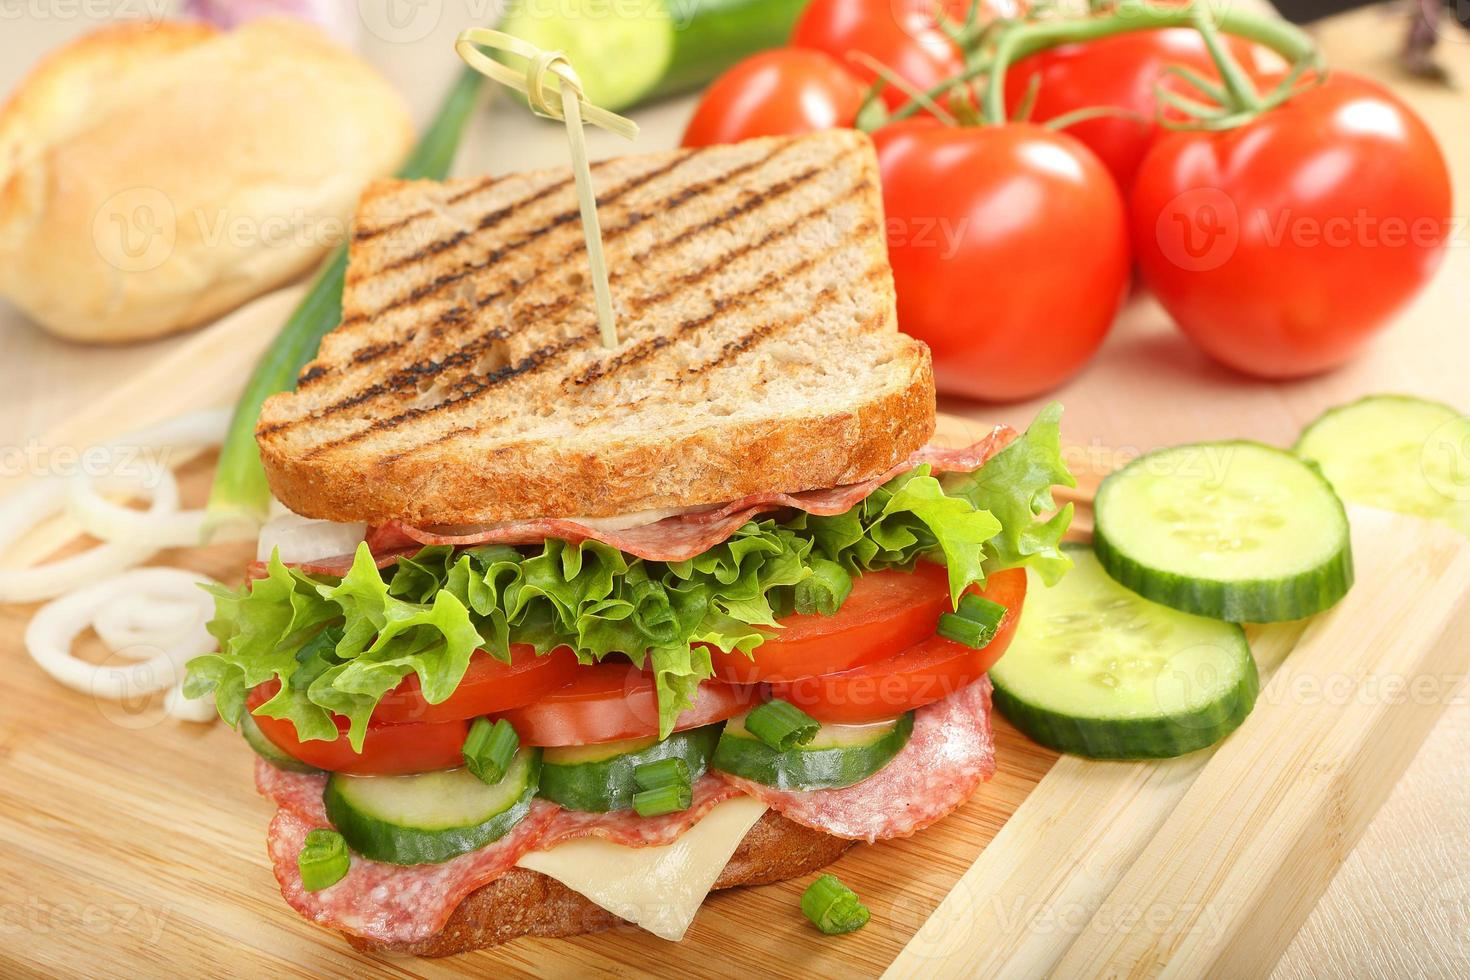 Sandwich with cheese and salami on wood background photo